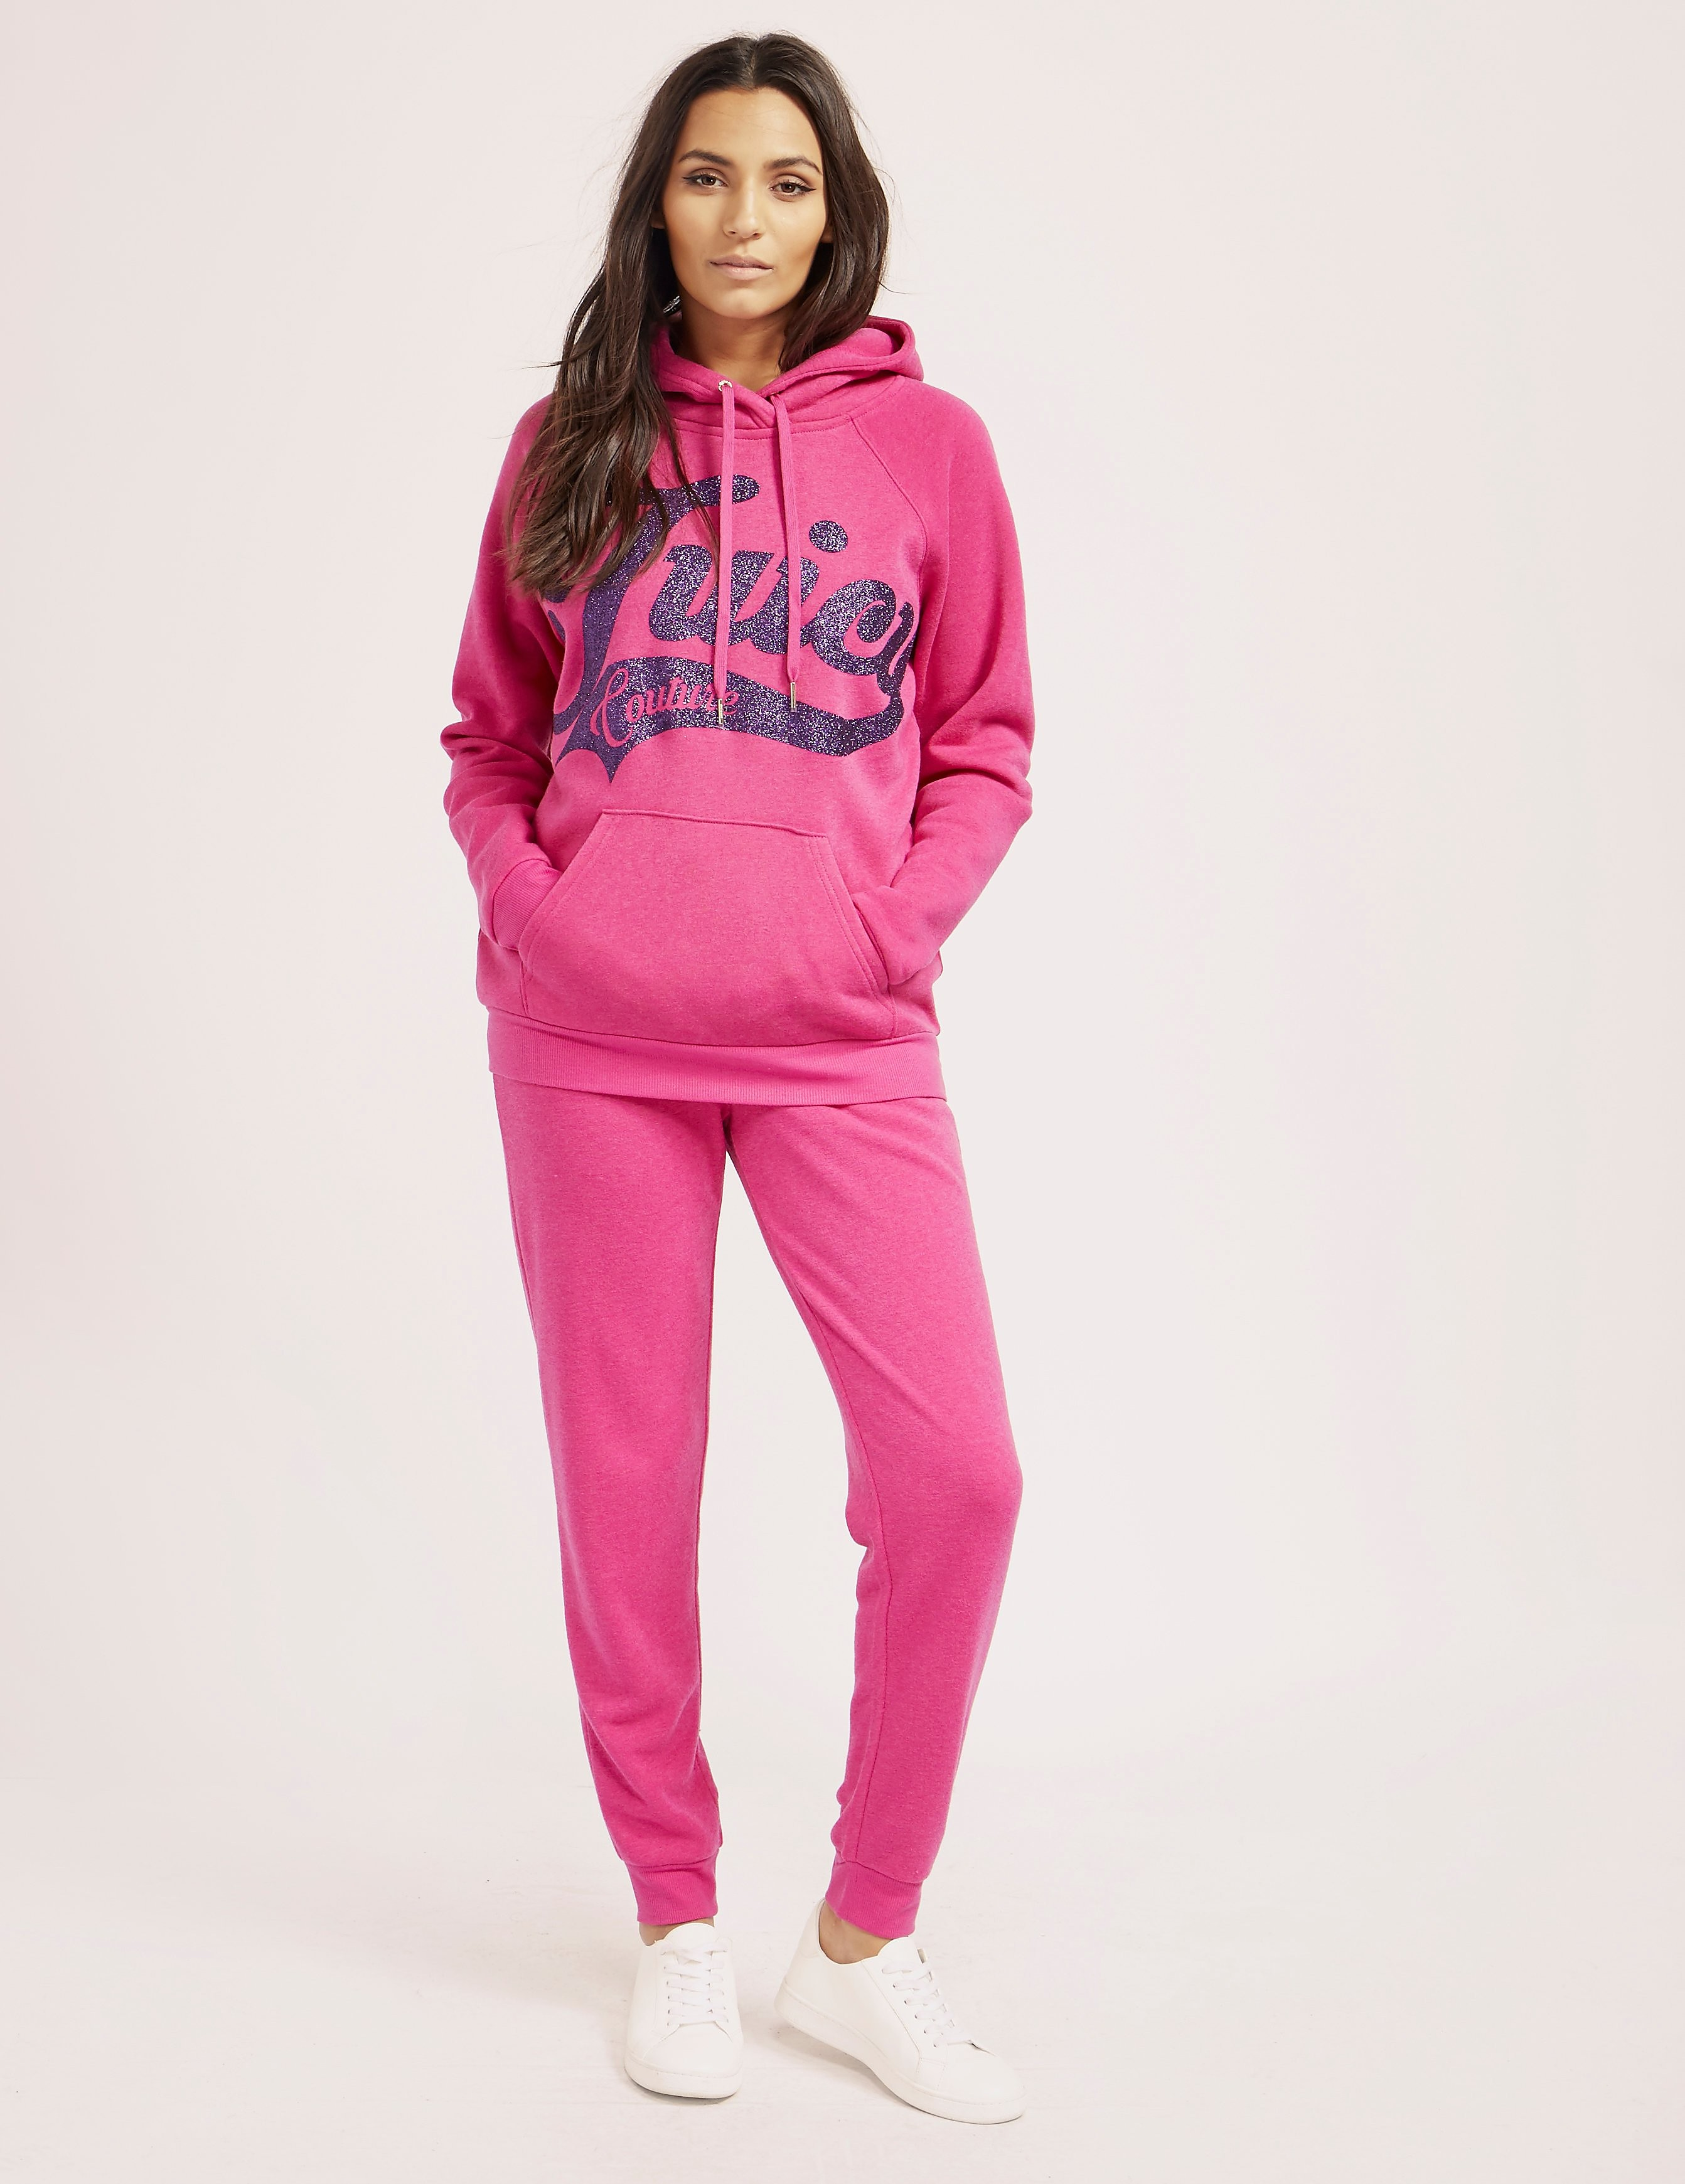 Juicy Couture Glitter Hoodie